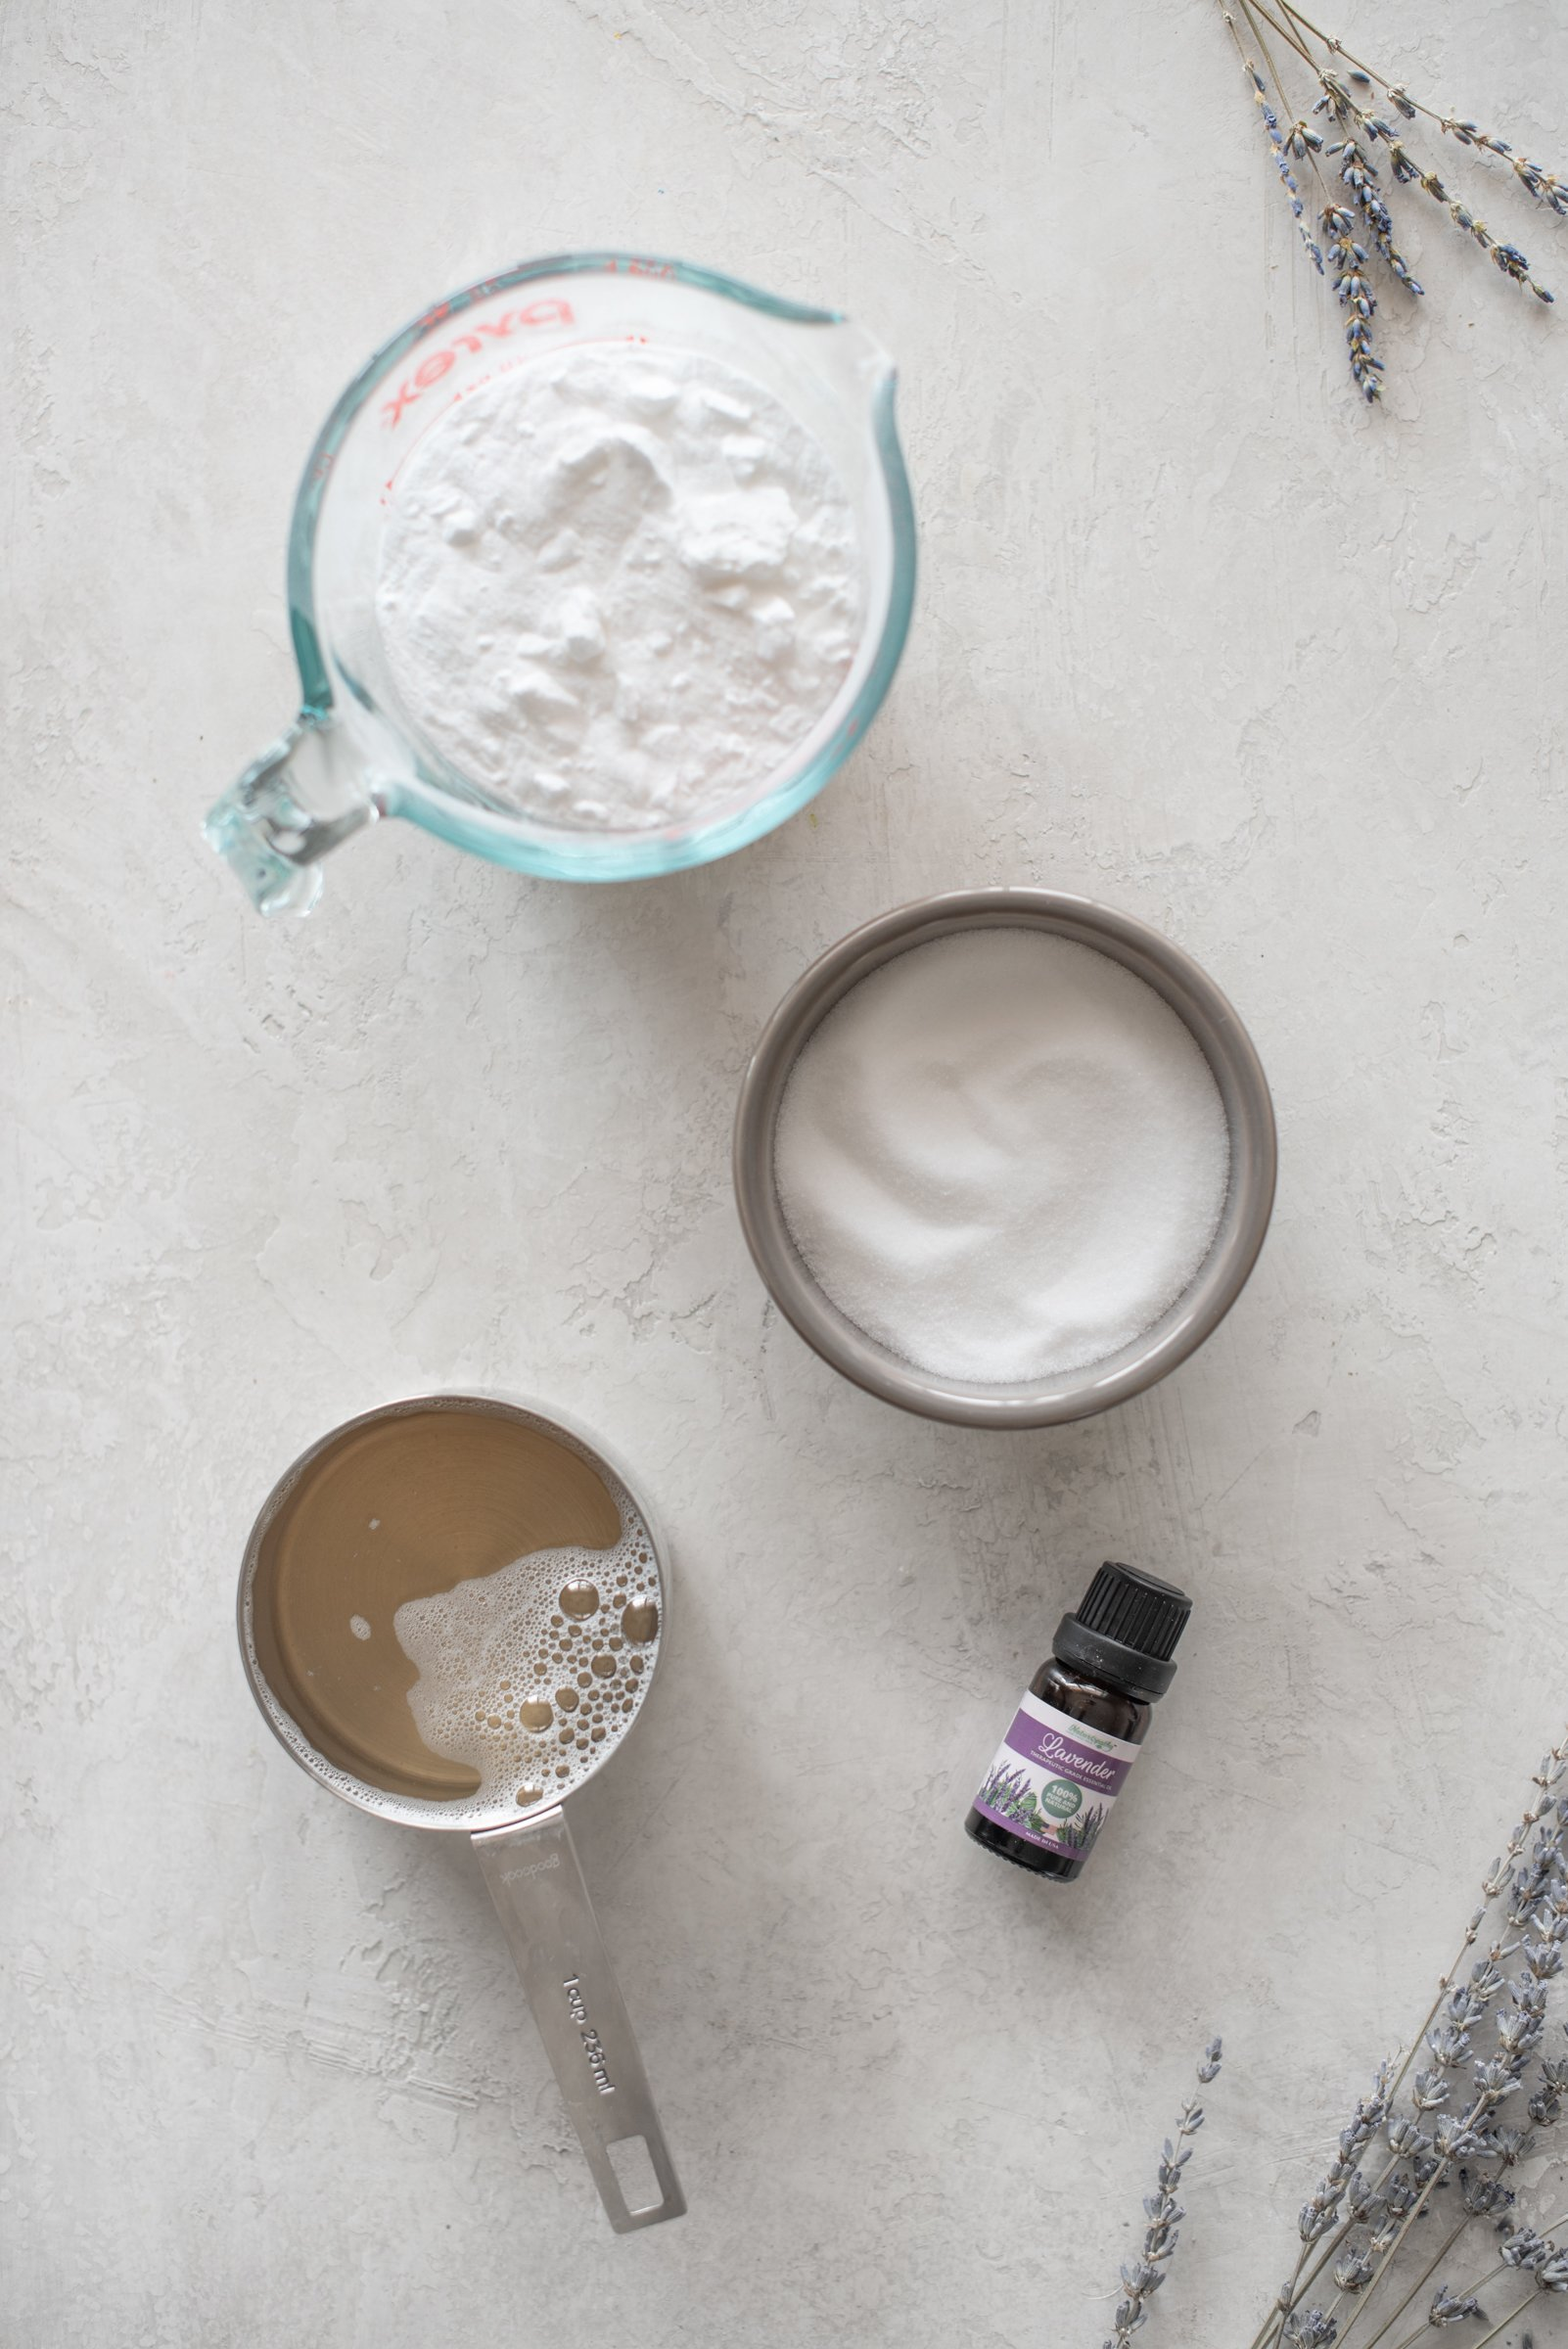 Ingredients for Borax-Free Laundry Detergent in individual measuring cups